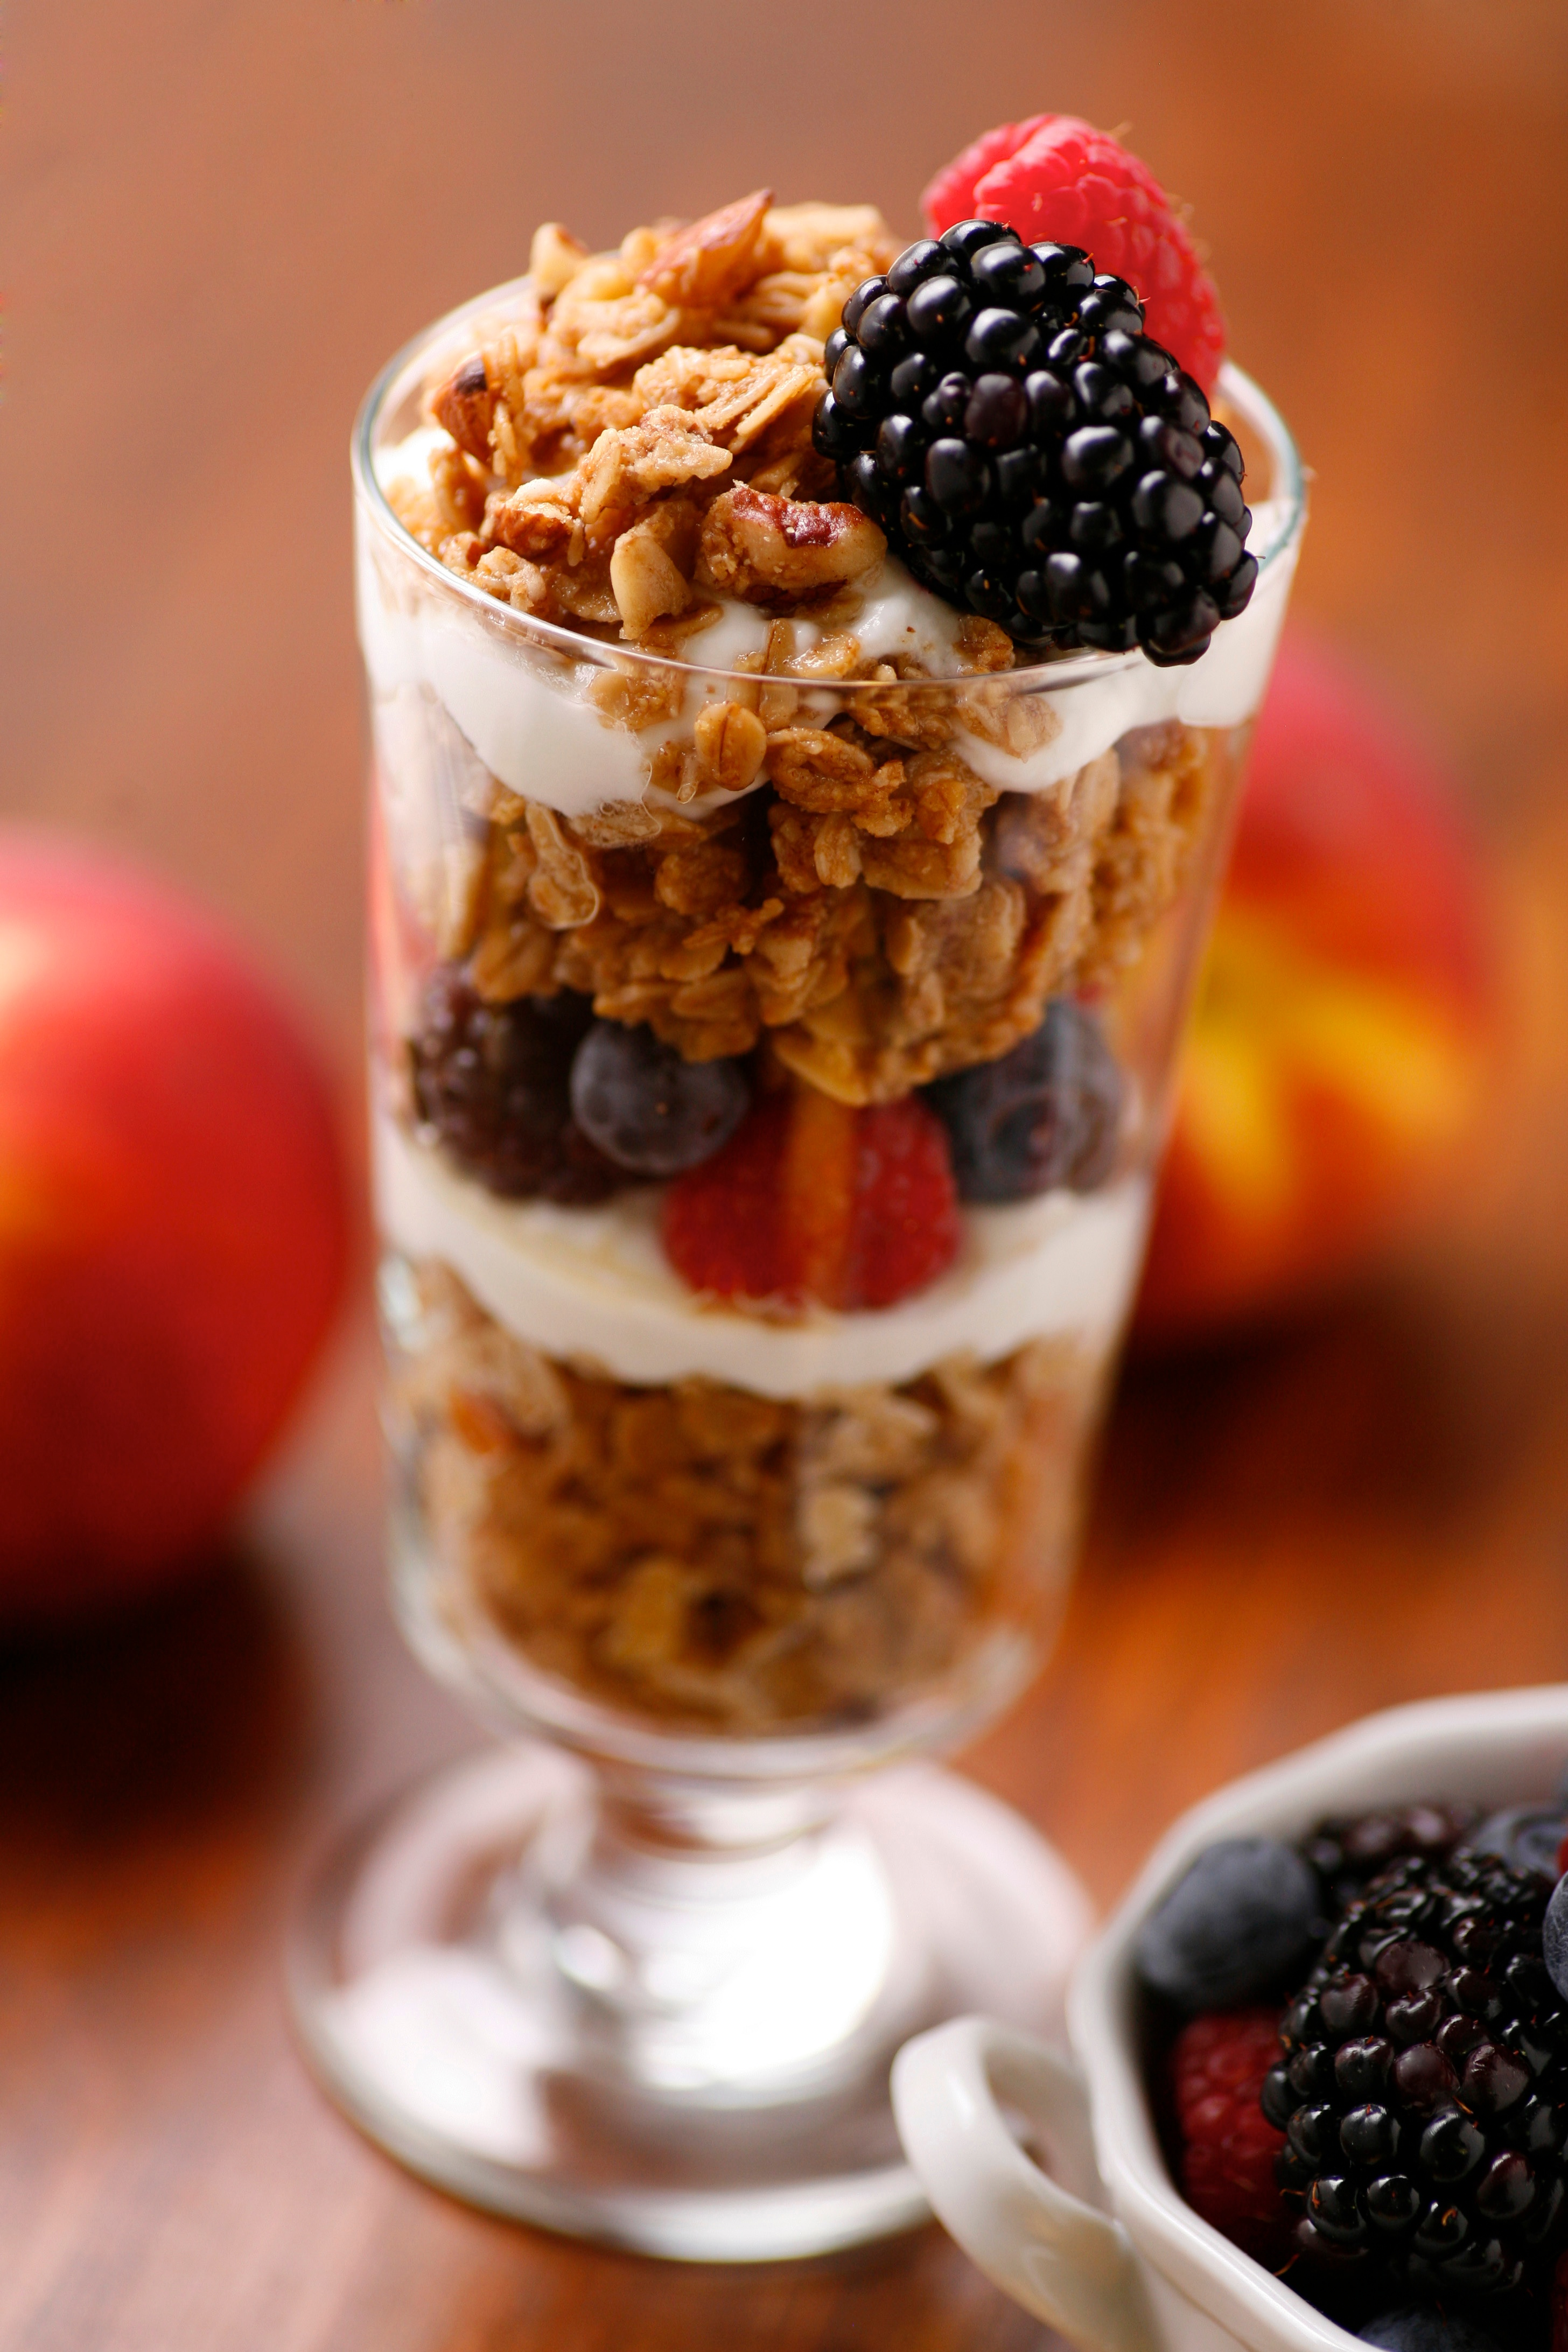 Jessica's Granola and Yogurt Parfait